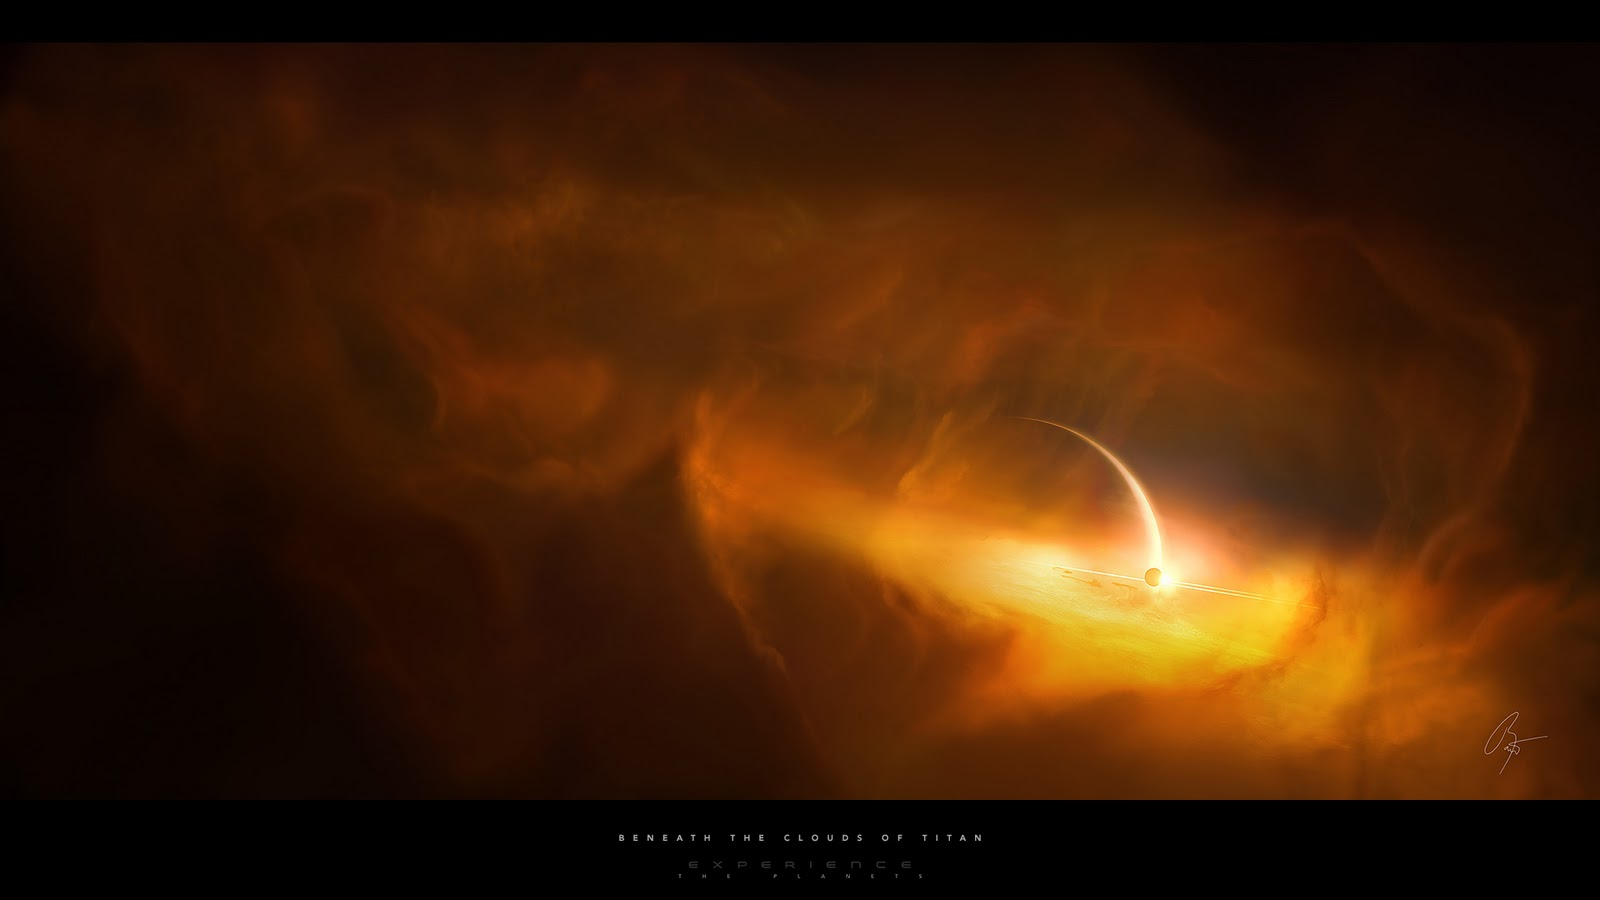 Steely-Art: Someing Epic: Planet